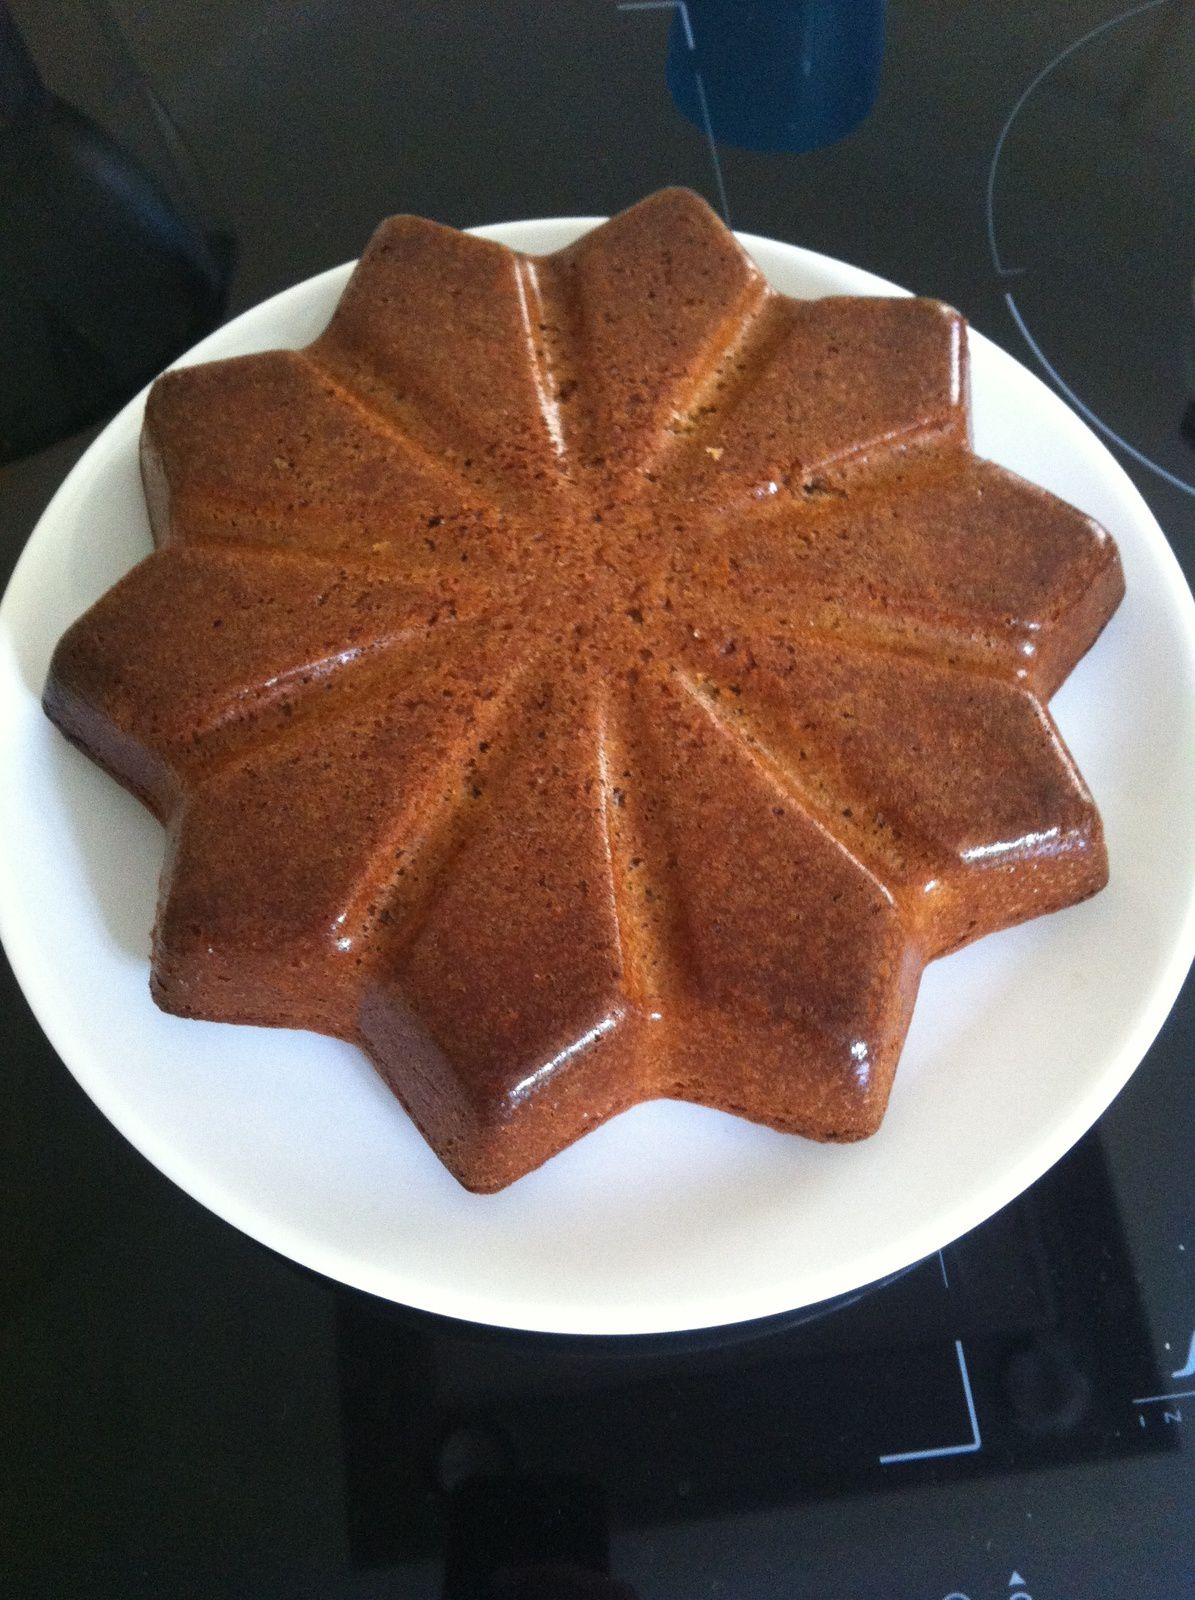 gateau moelleux aux speculoos